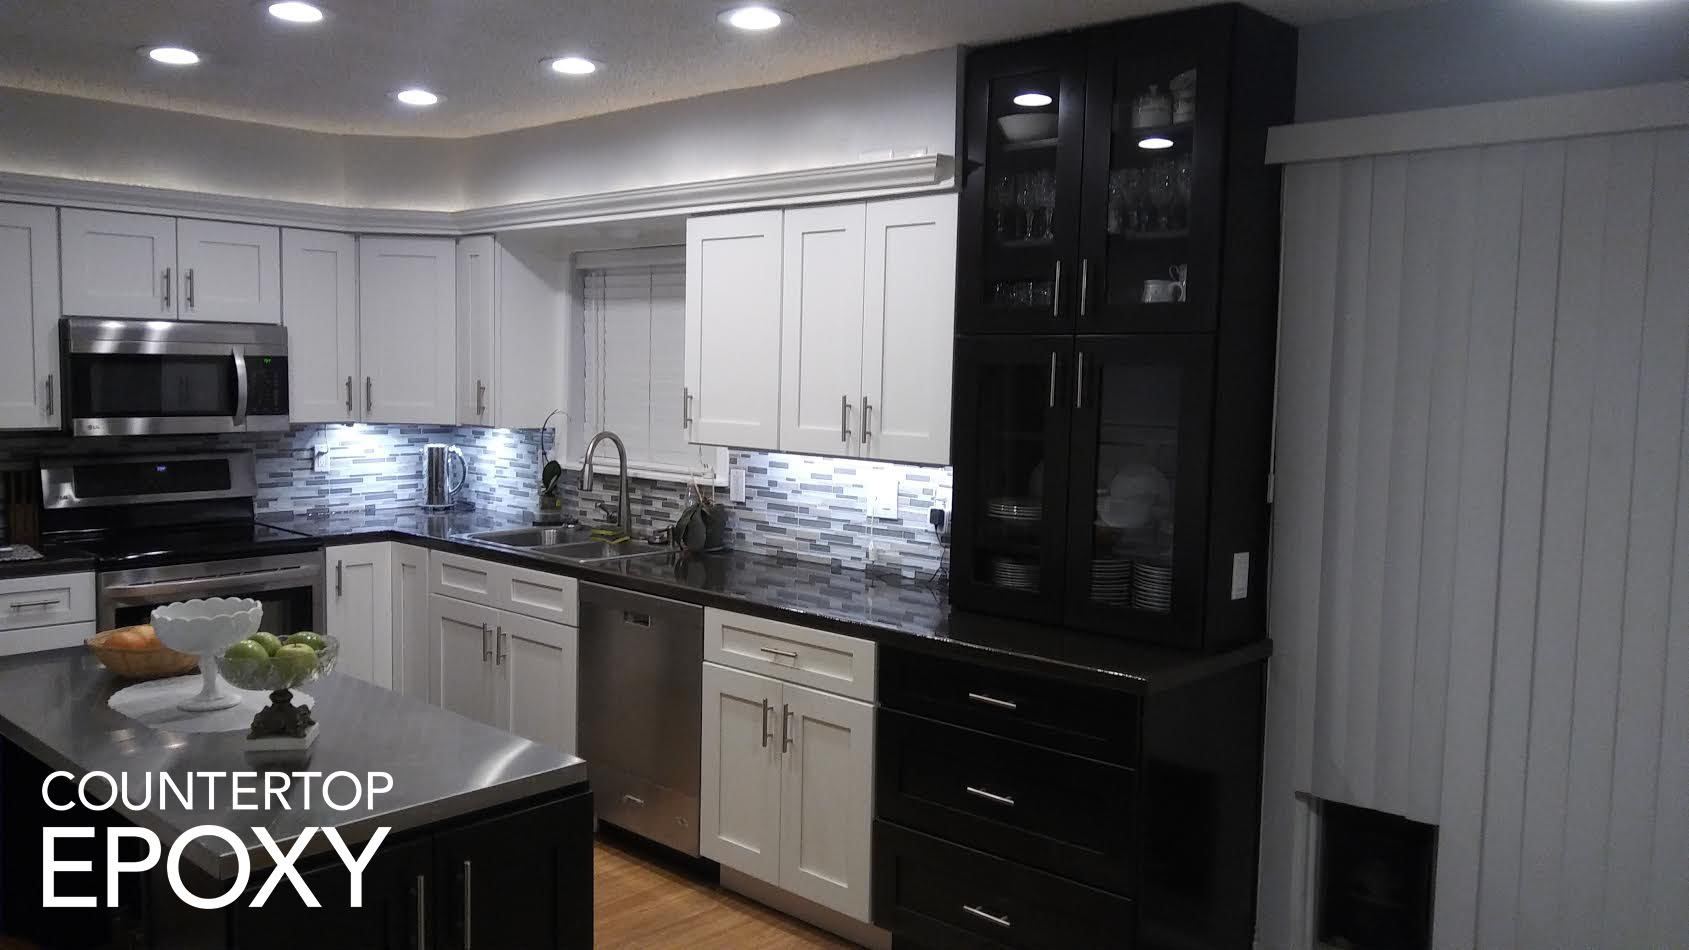 How To Update Your Kitchen Cabinets Counter Top Epoxy